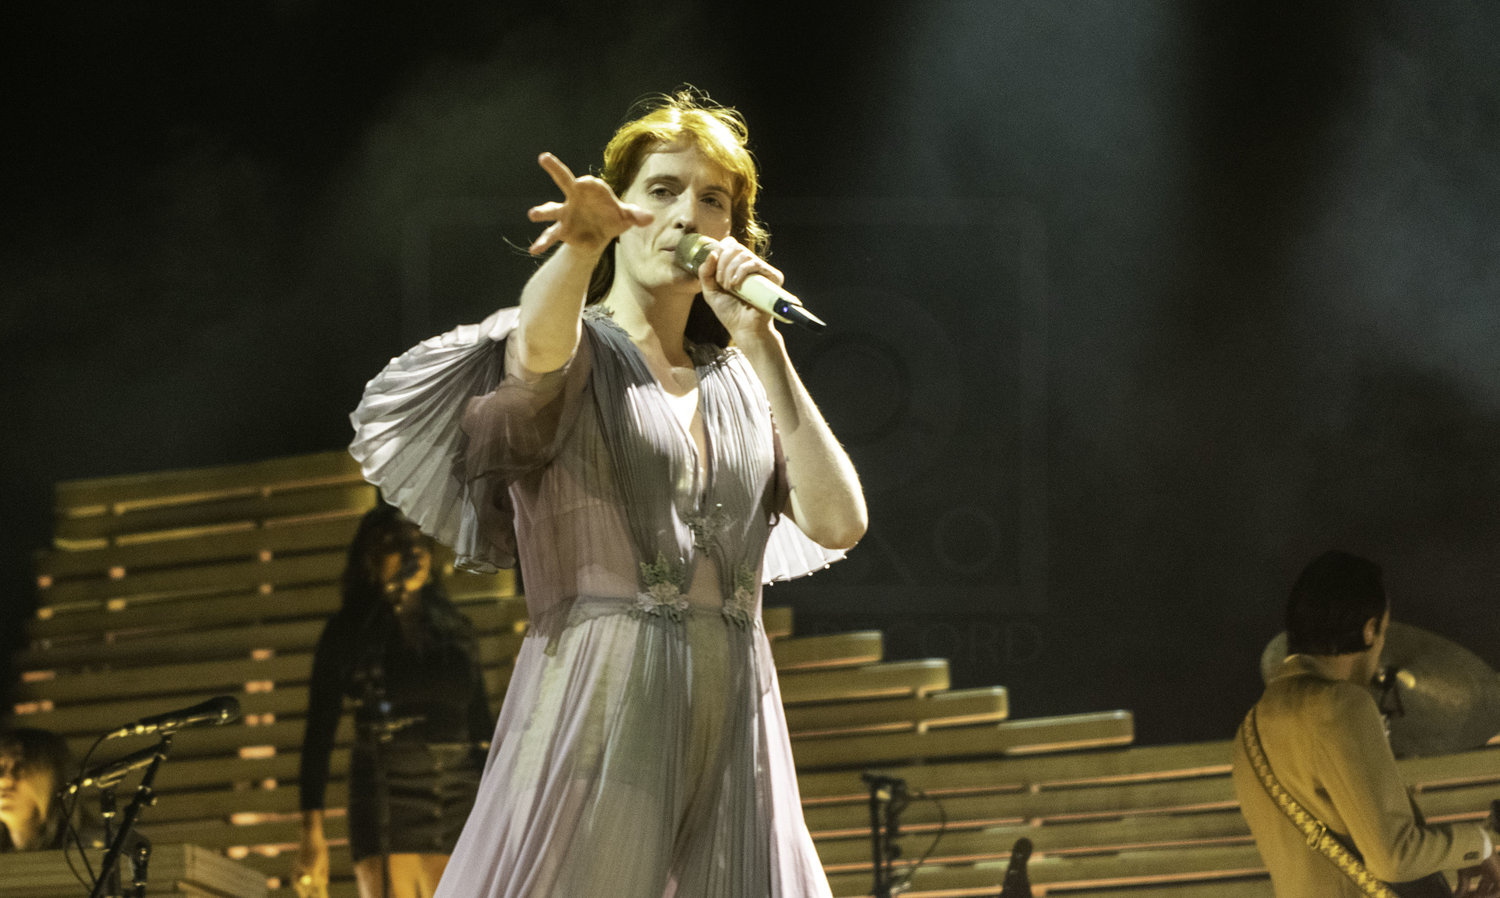 FLORENCE + THE MACHINE PERFORMING AT GLASGOW'S SSE HYDRO - 17.11.2018  PICTURE BY: CALUM BUCHAN PHOTOGRAPHY